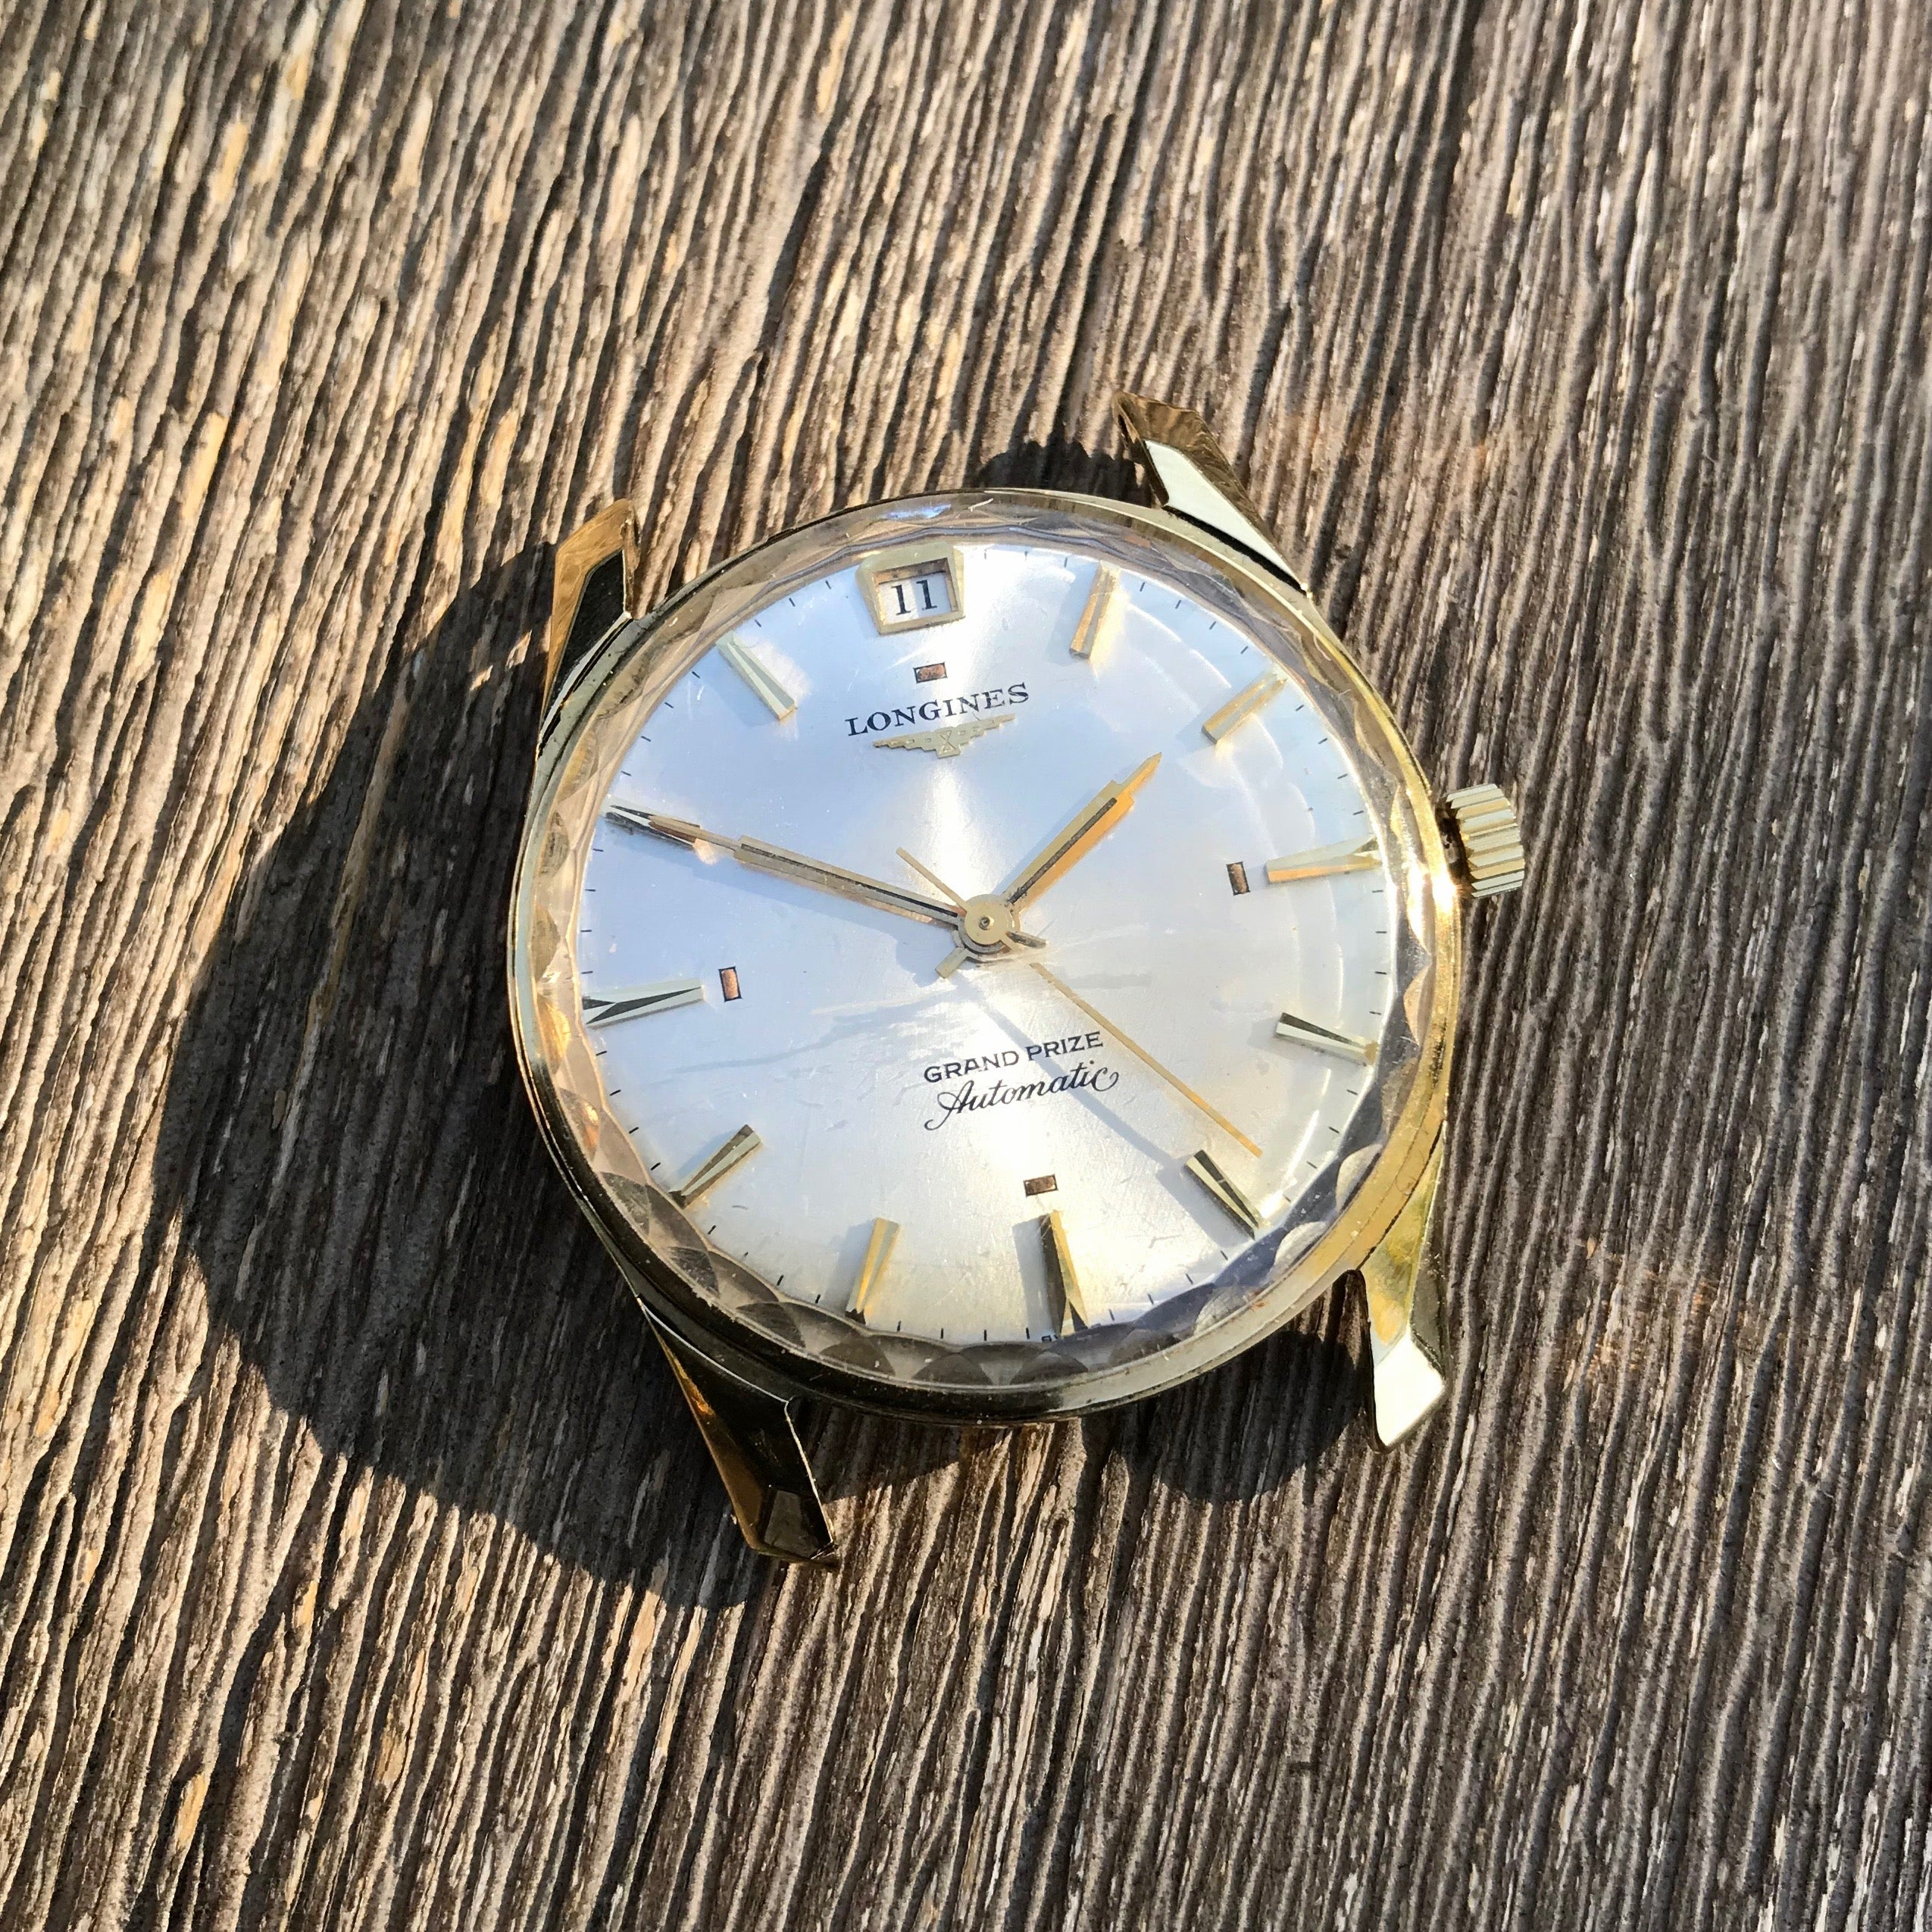 Vintage Longines Grand Prize Automatic 18K Yellow Gold Silver Date Wristwatch - Hashtag Watch Company